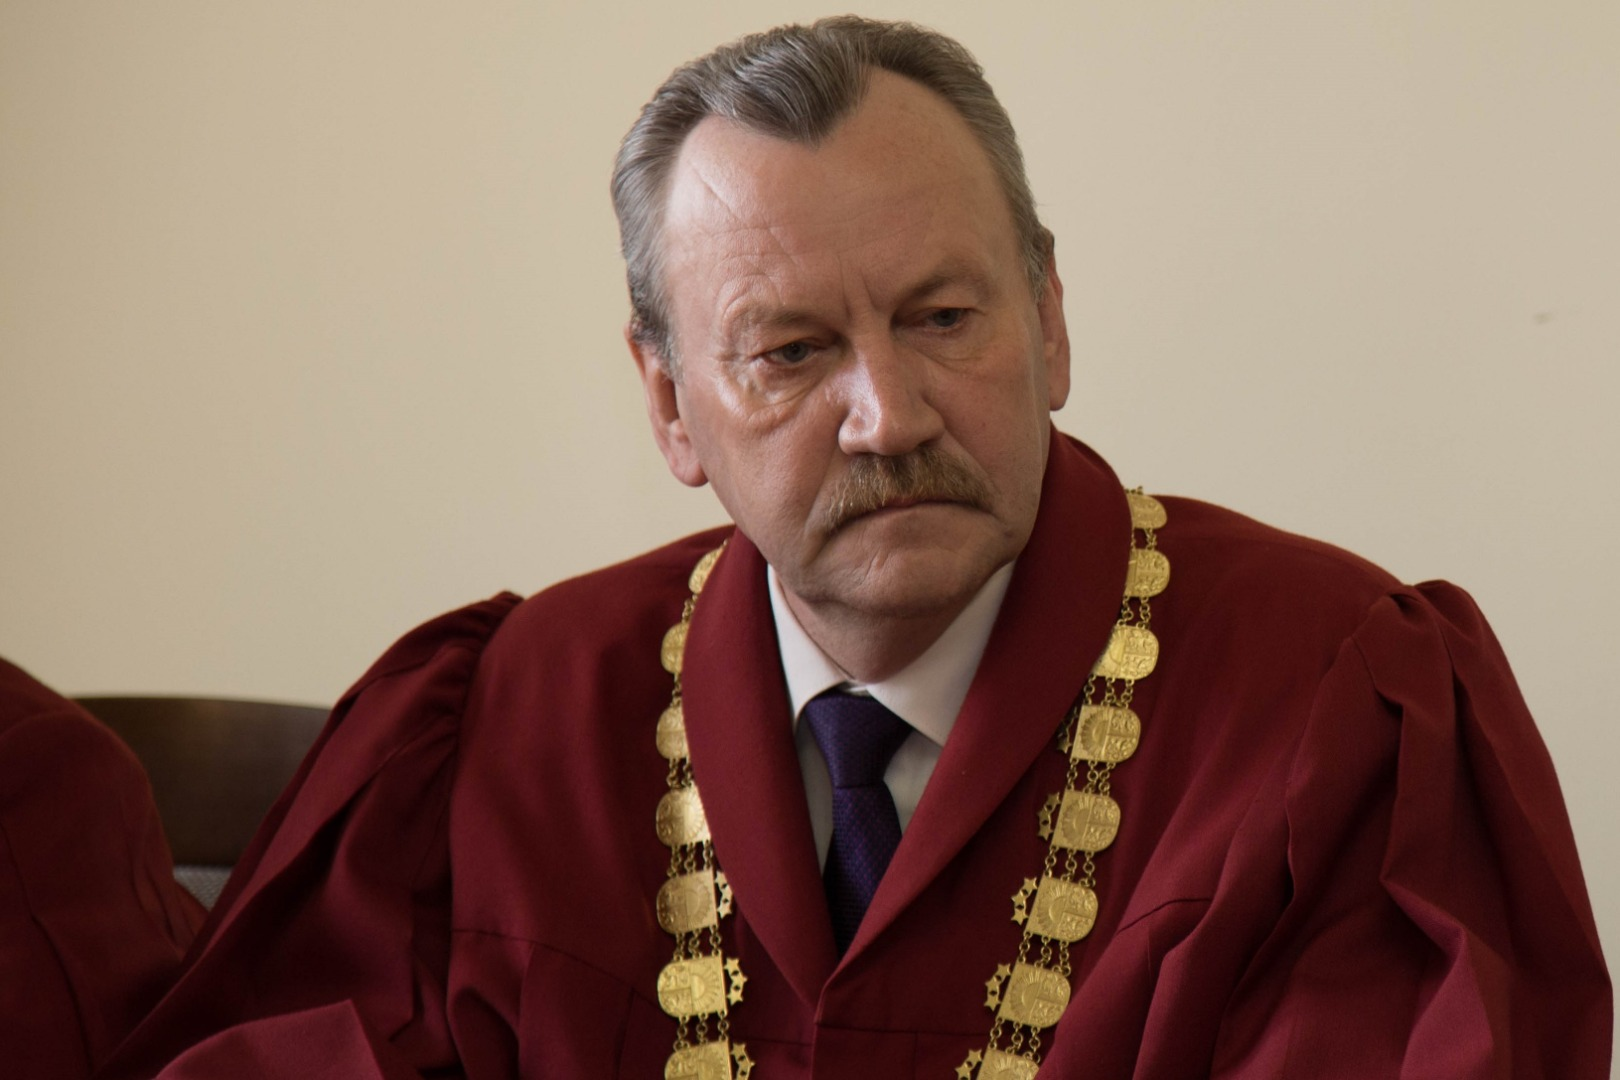 01.04.2020. Peteris Dzalbe, Chair of the Department of Criminal Cases of the Senate, left the position of a judge and retired. Judge with 35 years of experience as a judge, first chair of Zemgale Regional Court, since 2005 - judge of the Supreme Court, since 2011 chair of the Department of Criminal Cases of the Senate.